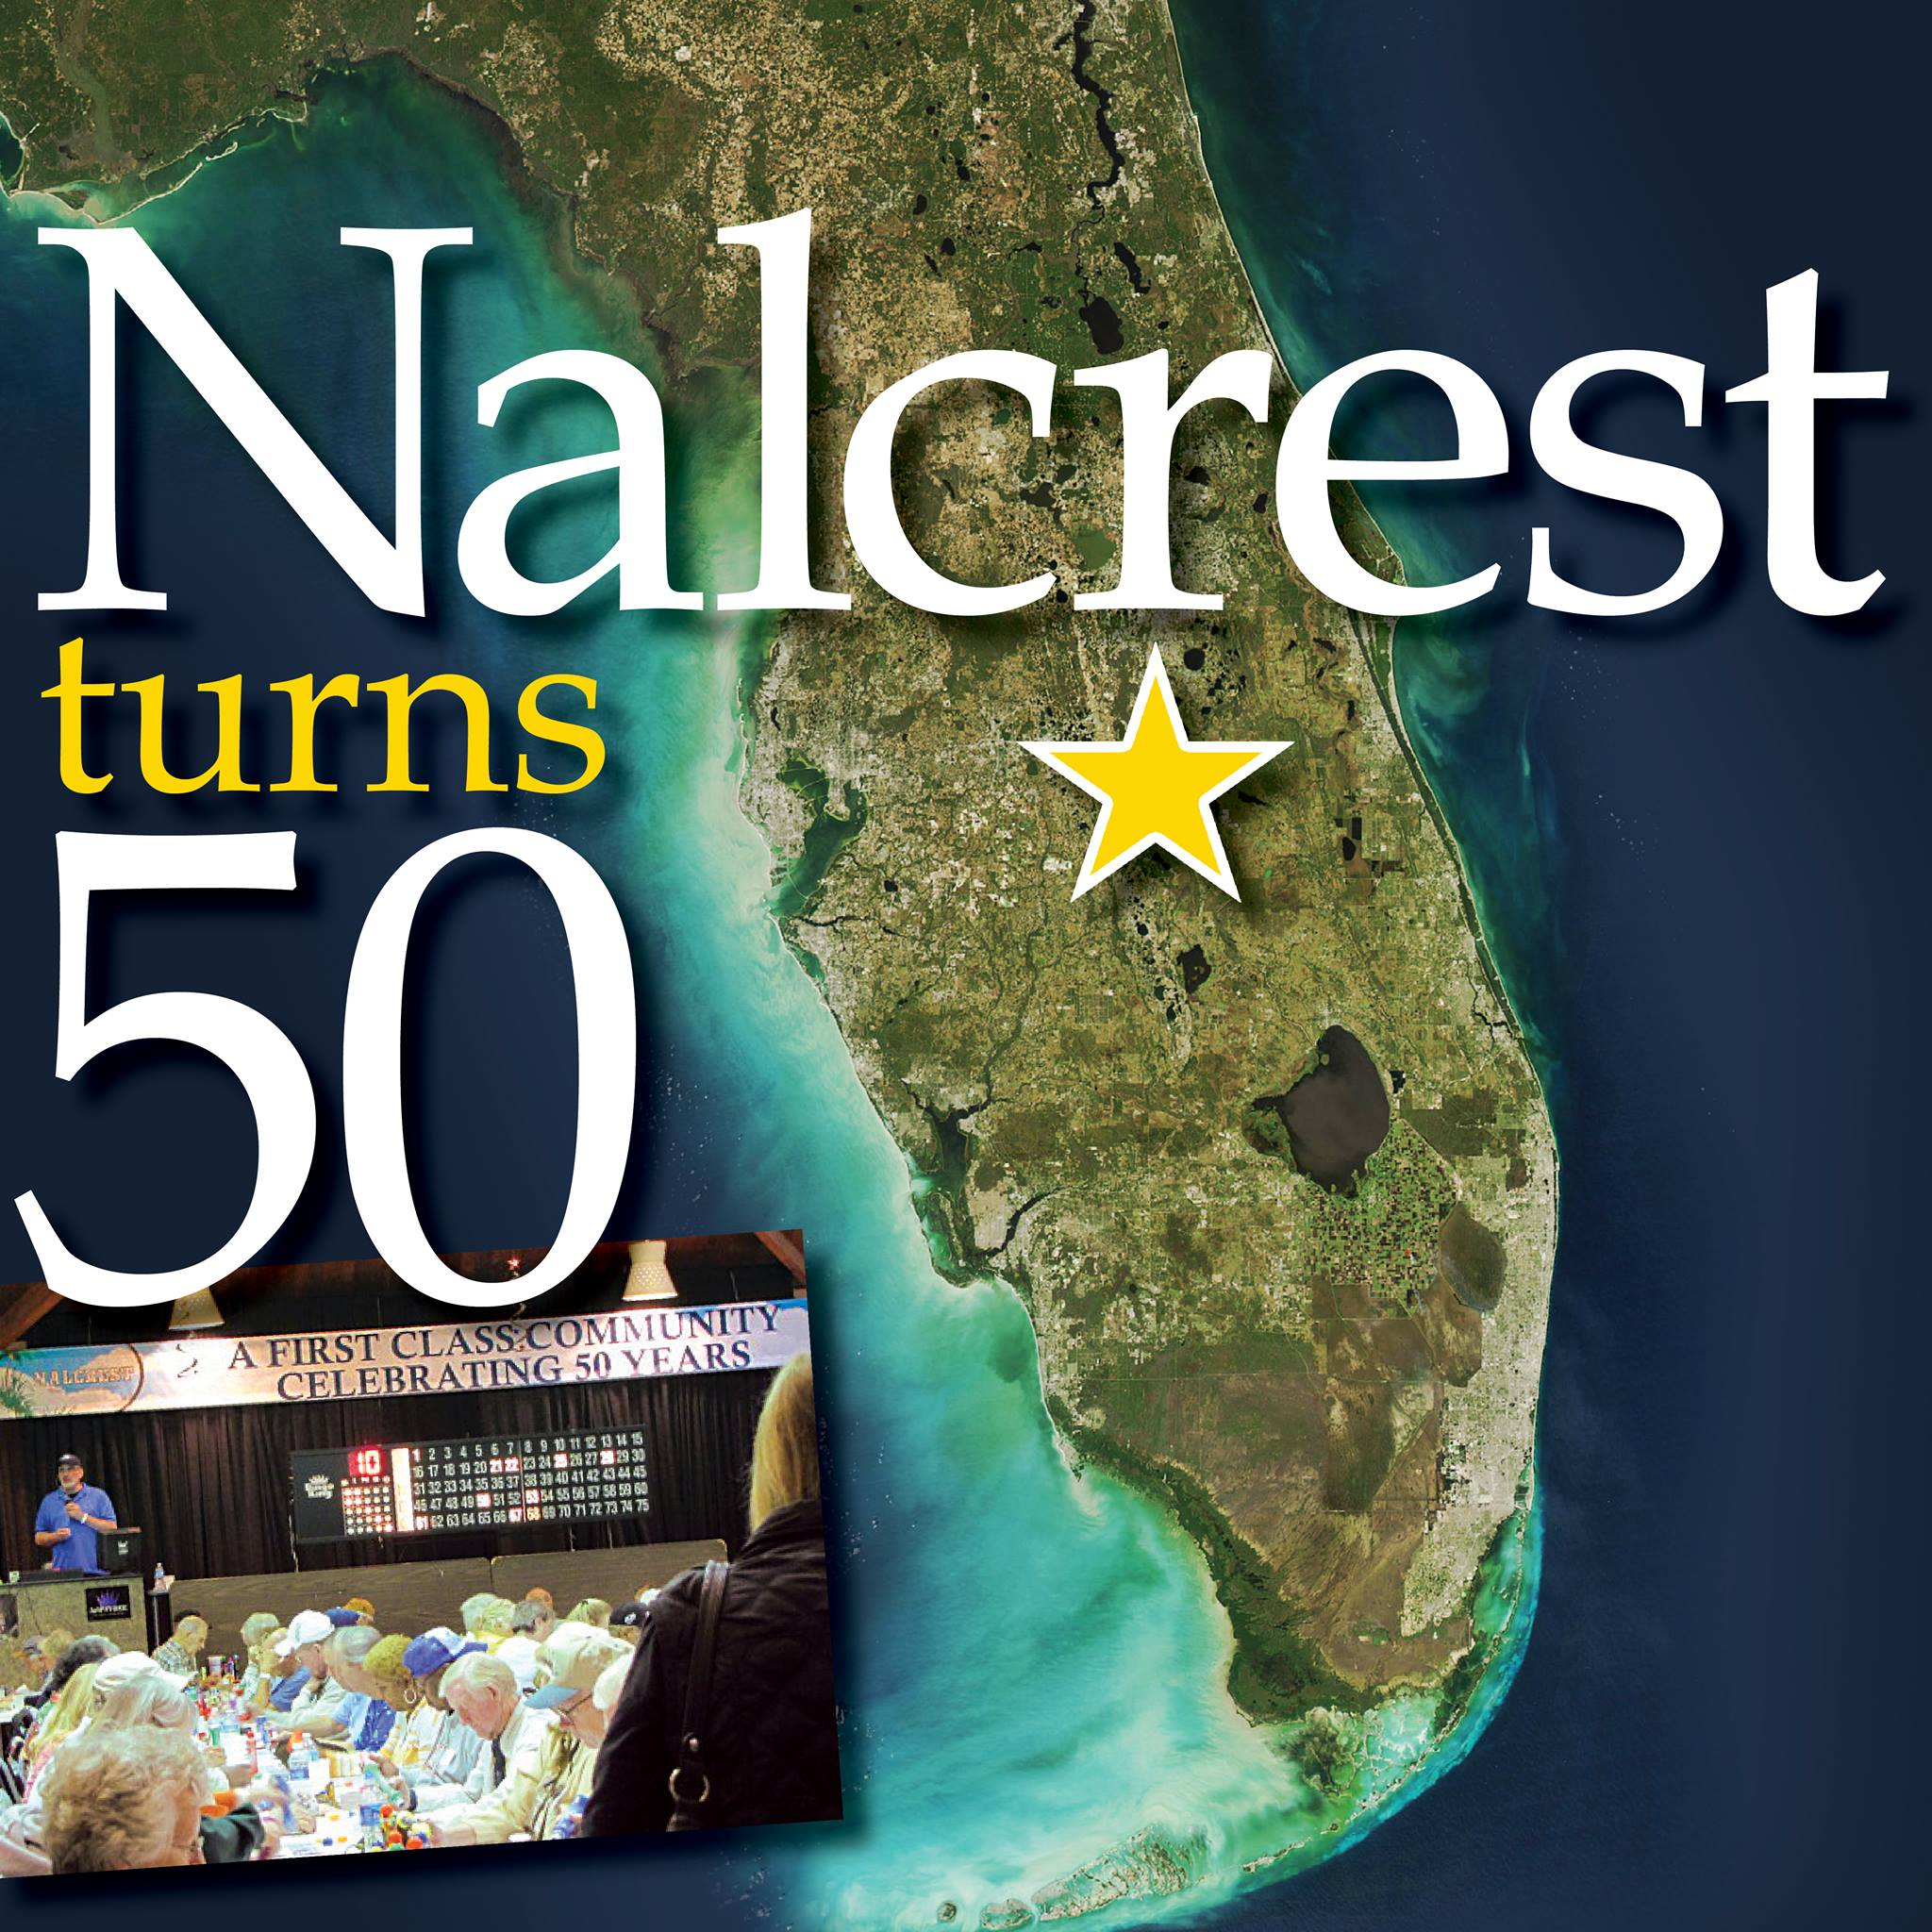 Nalcrest at 50